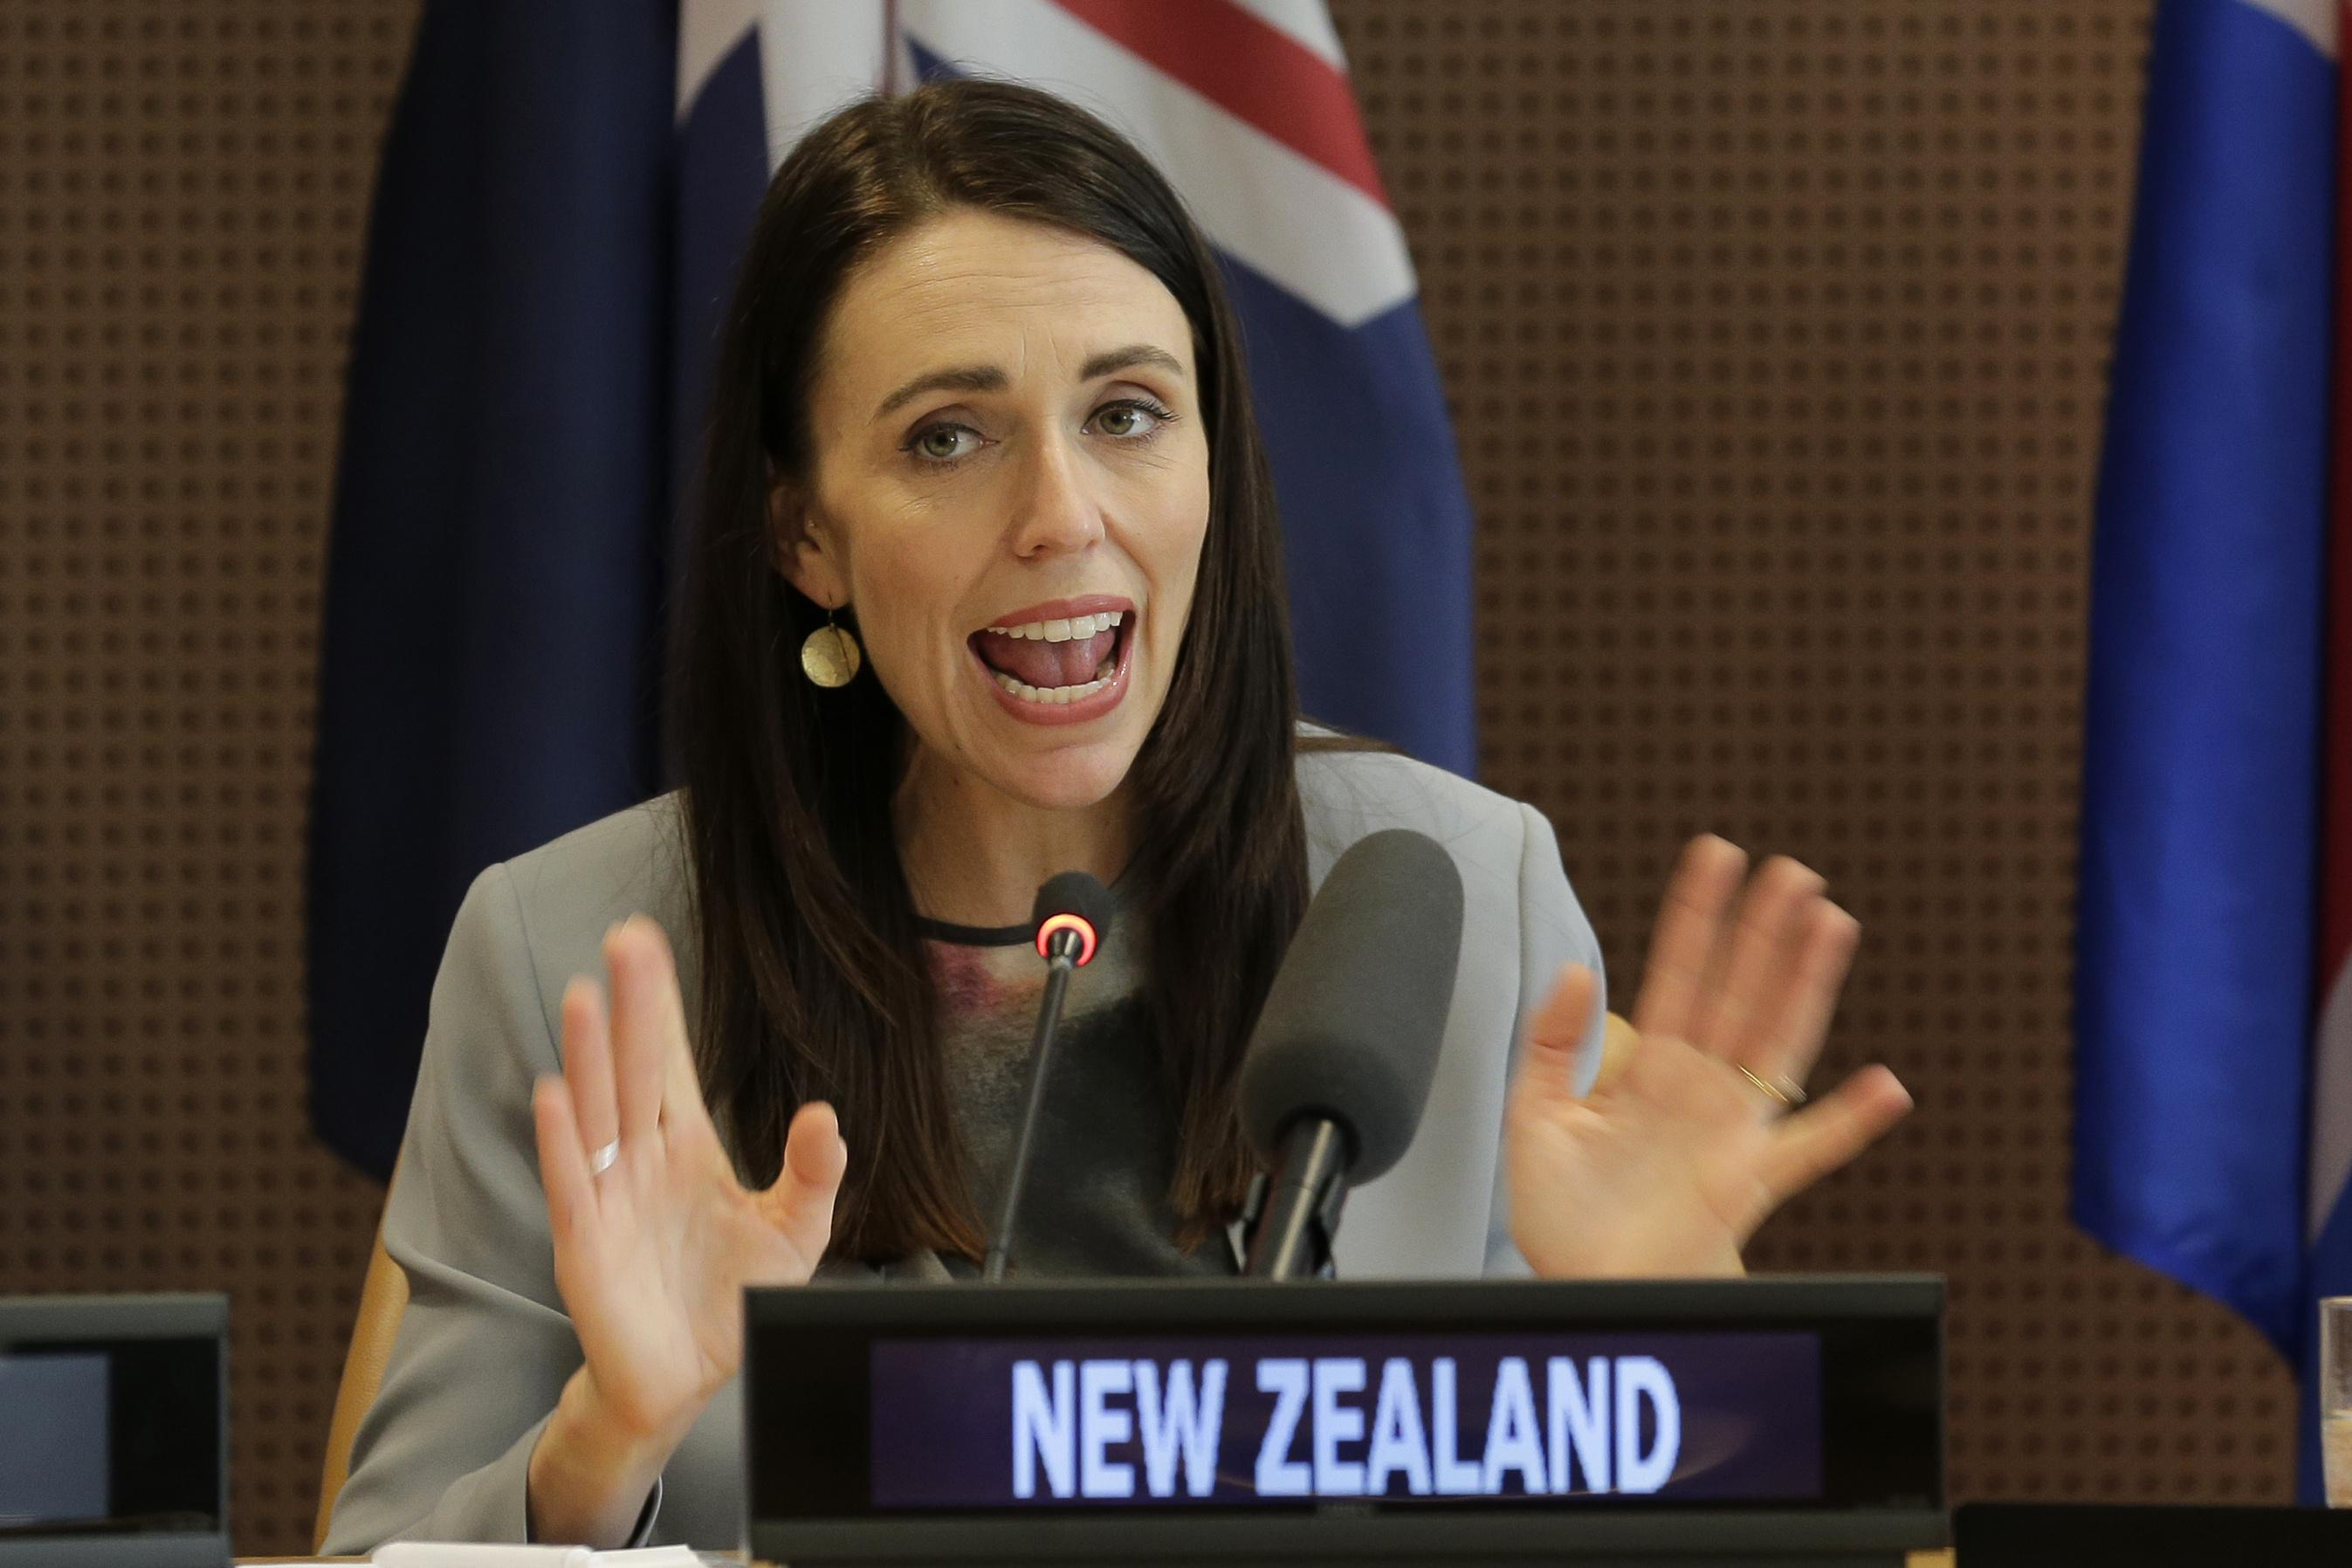 Factcheck: is New Zealand hypocritical to reject Australia's climate accounting?